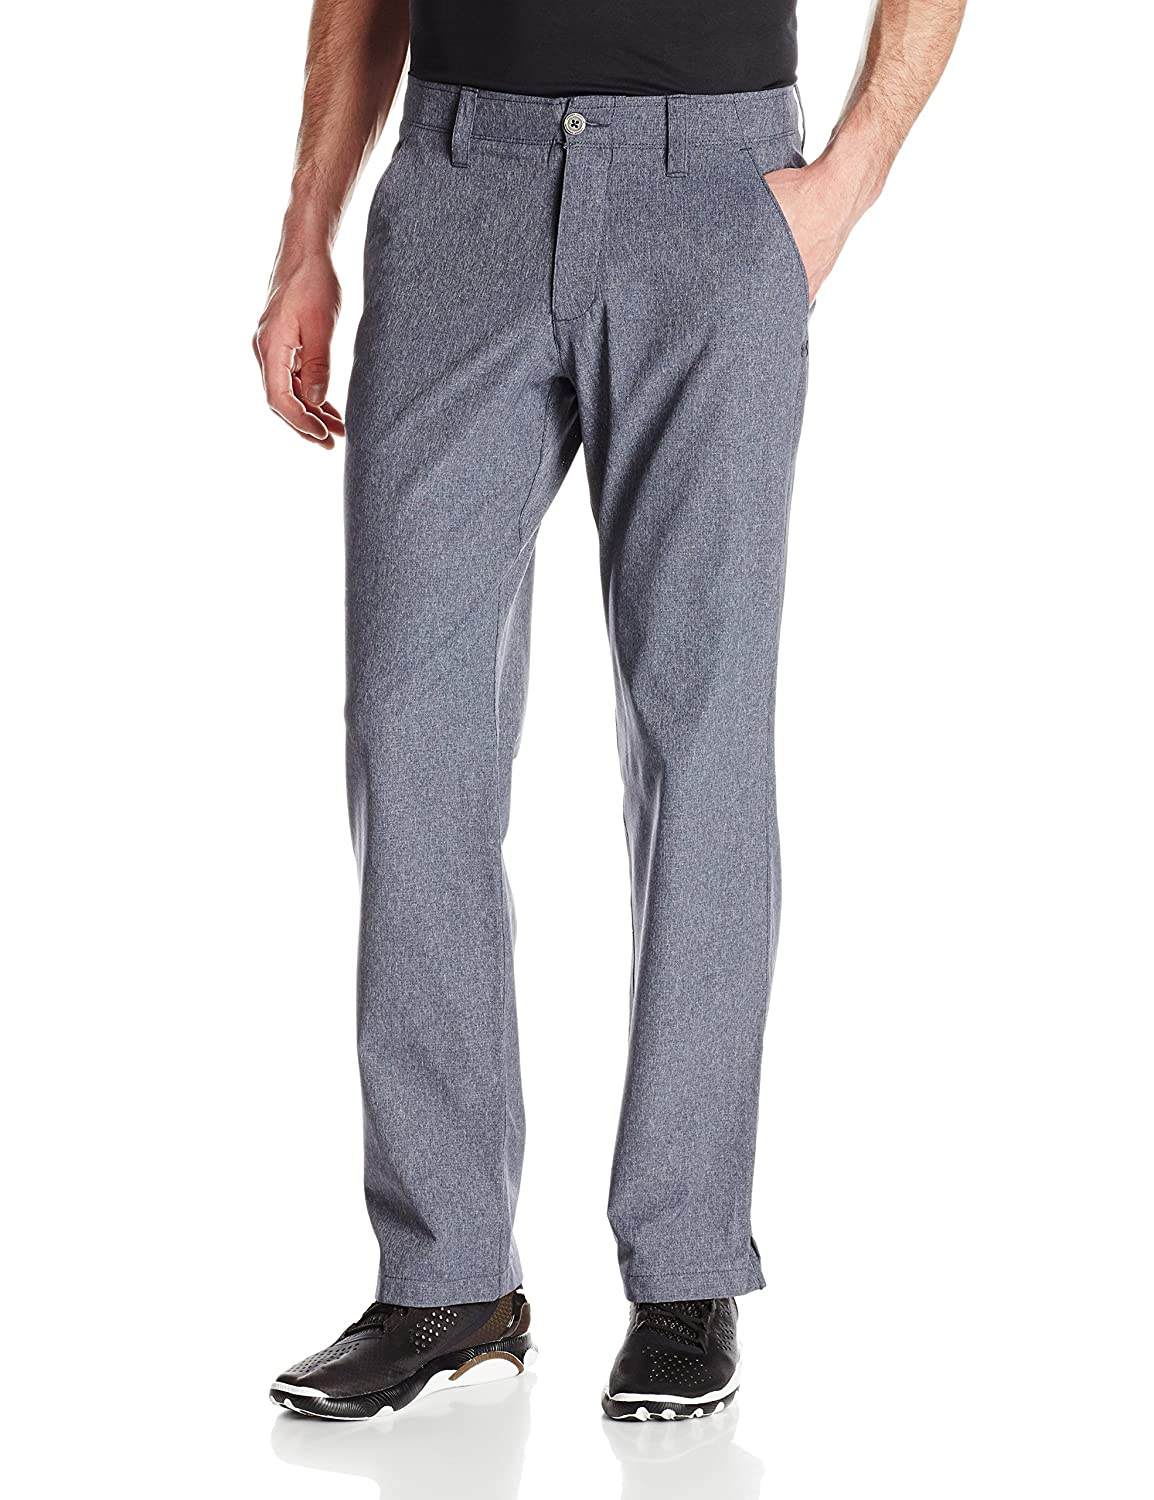 (アンダーアーマー) UNDER ARMOUR UA MATCH PLAY VENTED PANT B00Z9ACKSG 30W x 32L|Stealth Gray/True Gray Heather Stealth Gray/True Gray Heather 30W x 32L